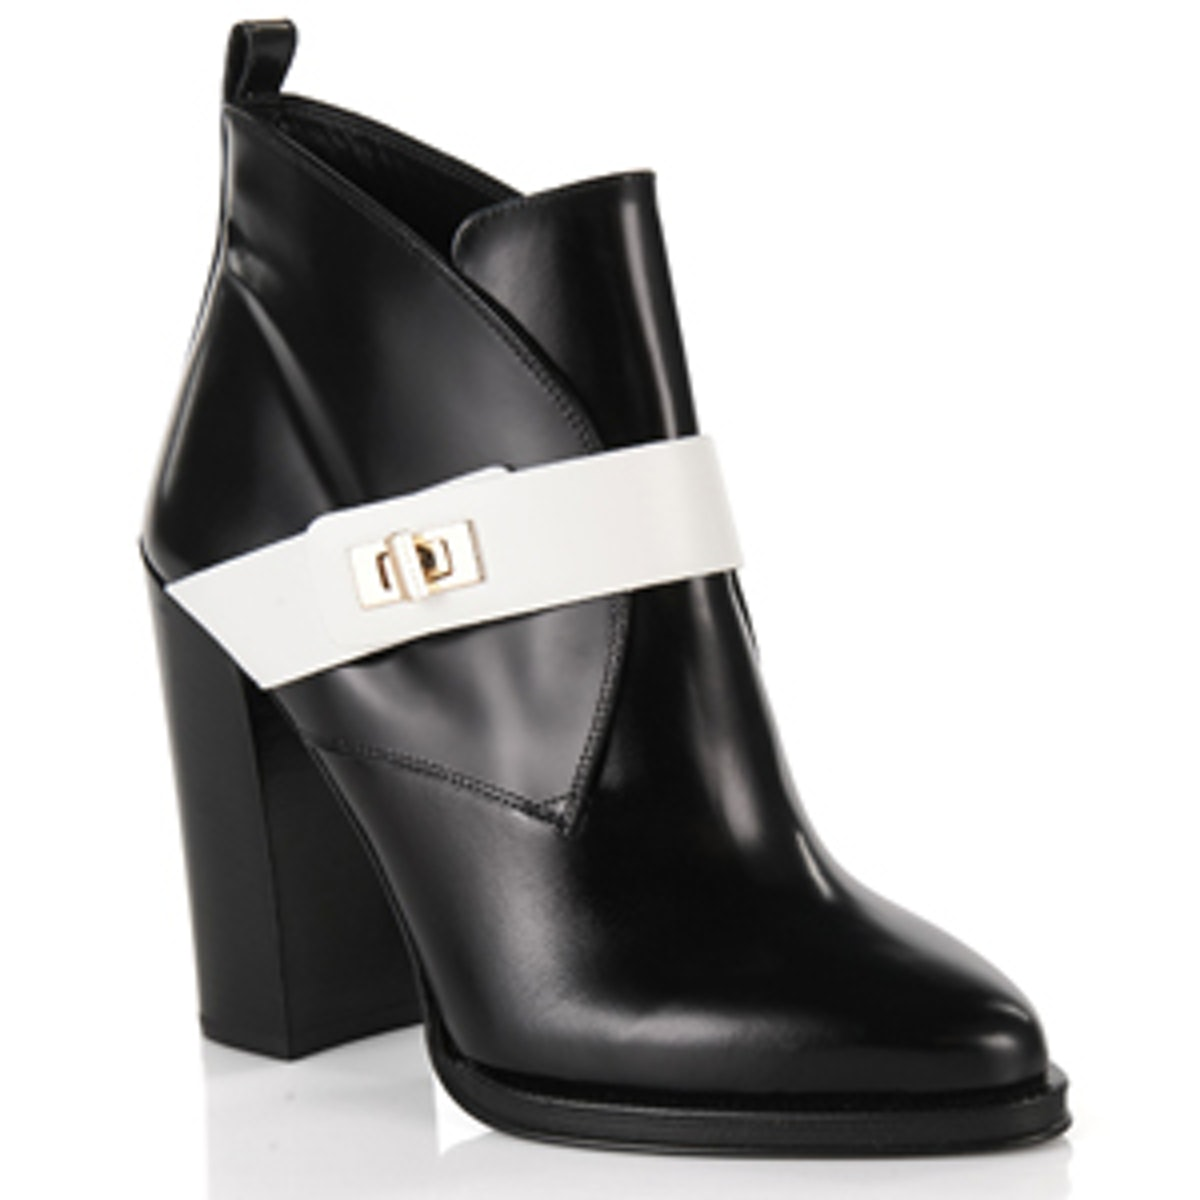 Black and White Leather Turnlock Boots